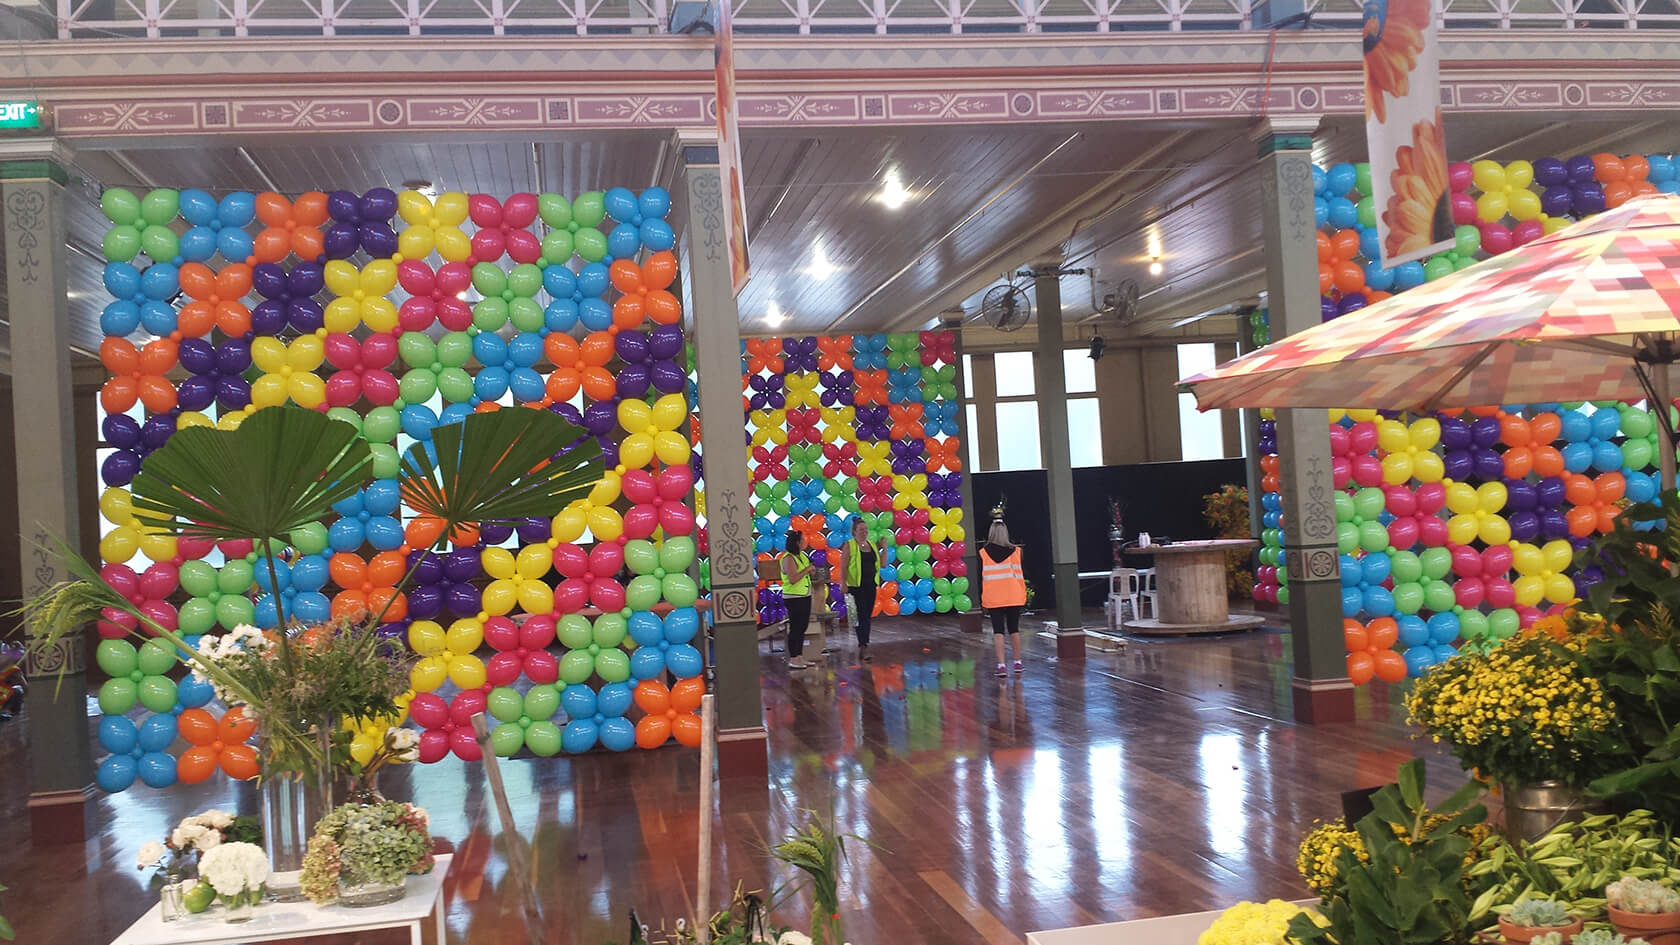 See Our Events! - image CE-37 on https://shivooballoons.com.au